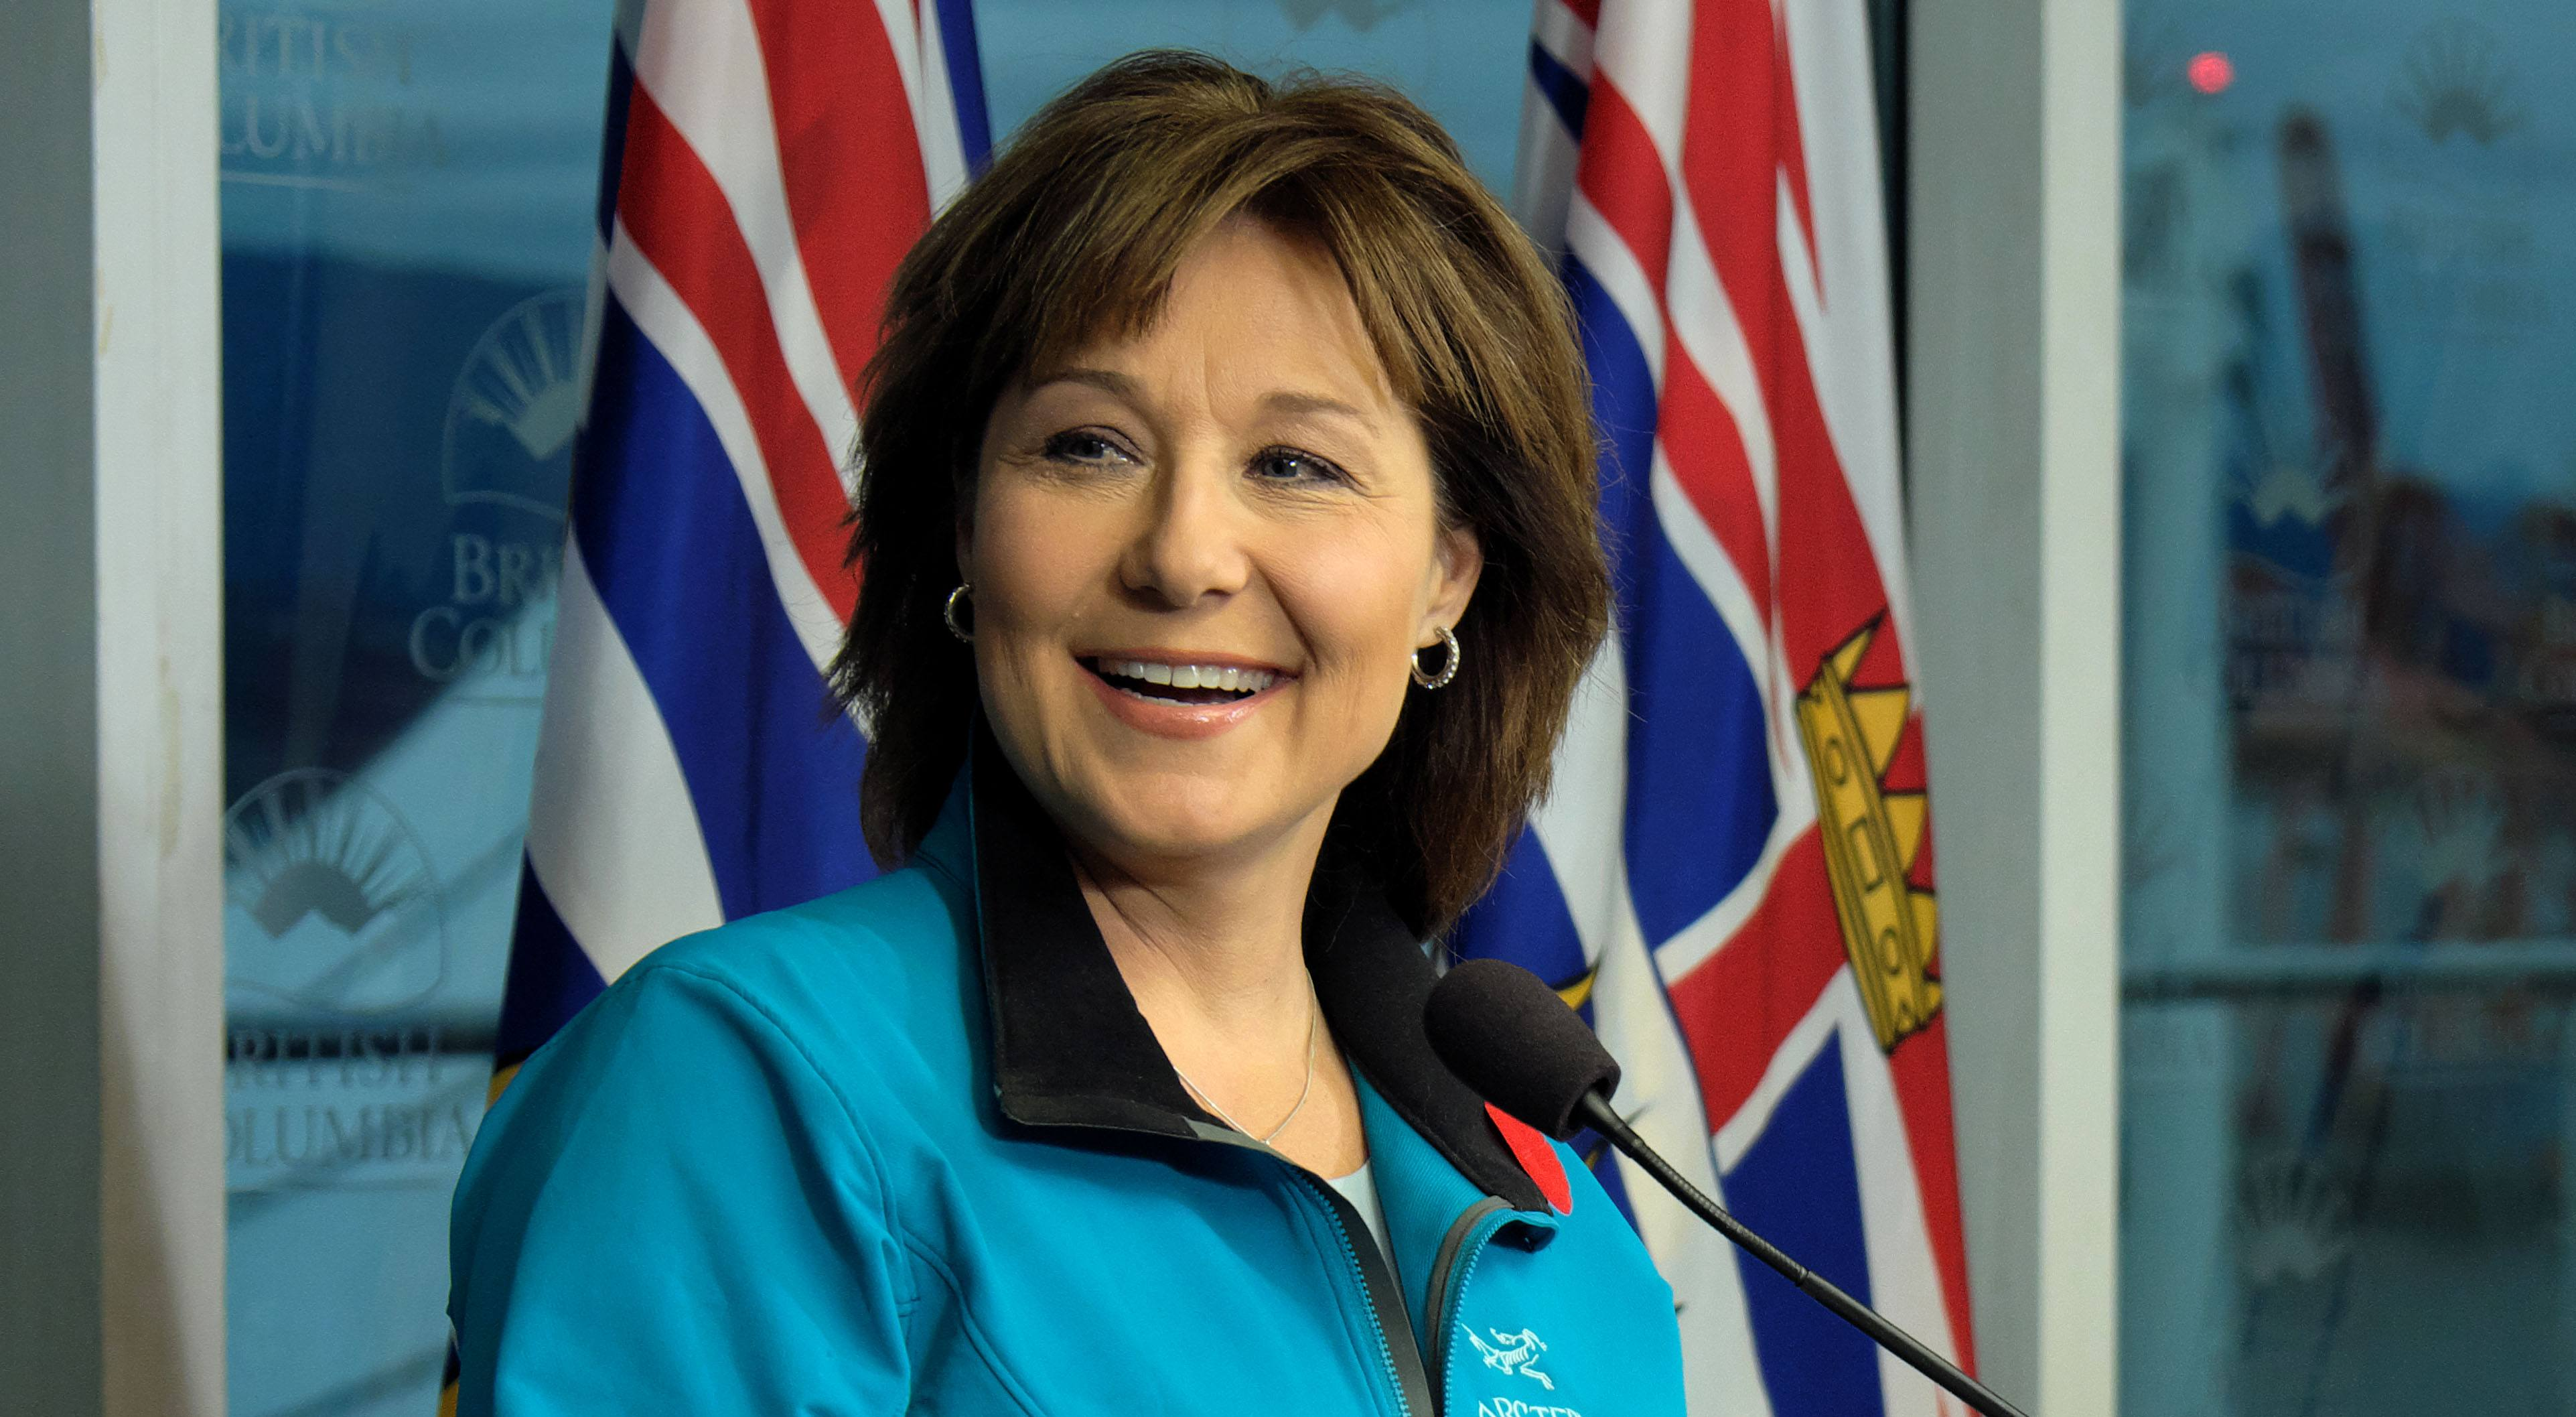 Bc premier christy clark province of bc flickr